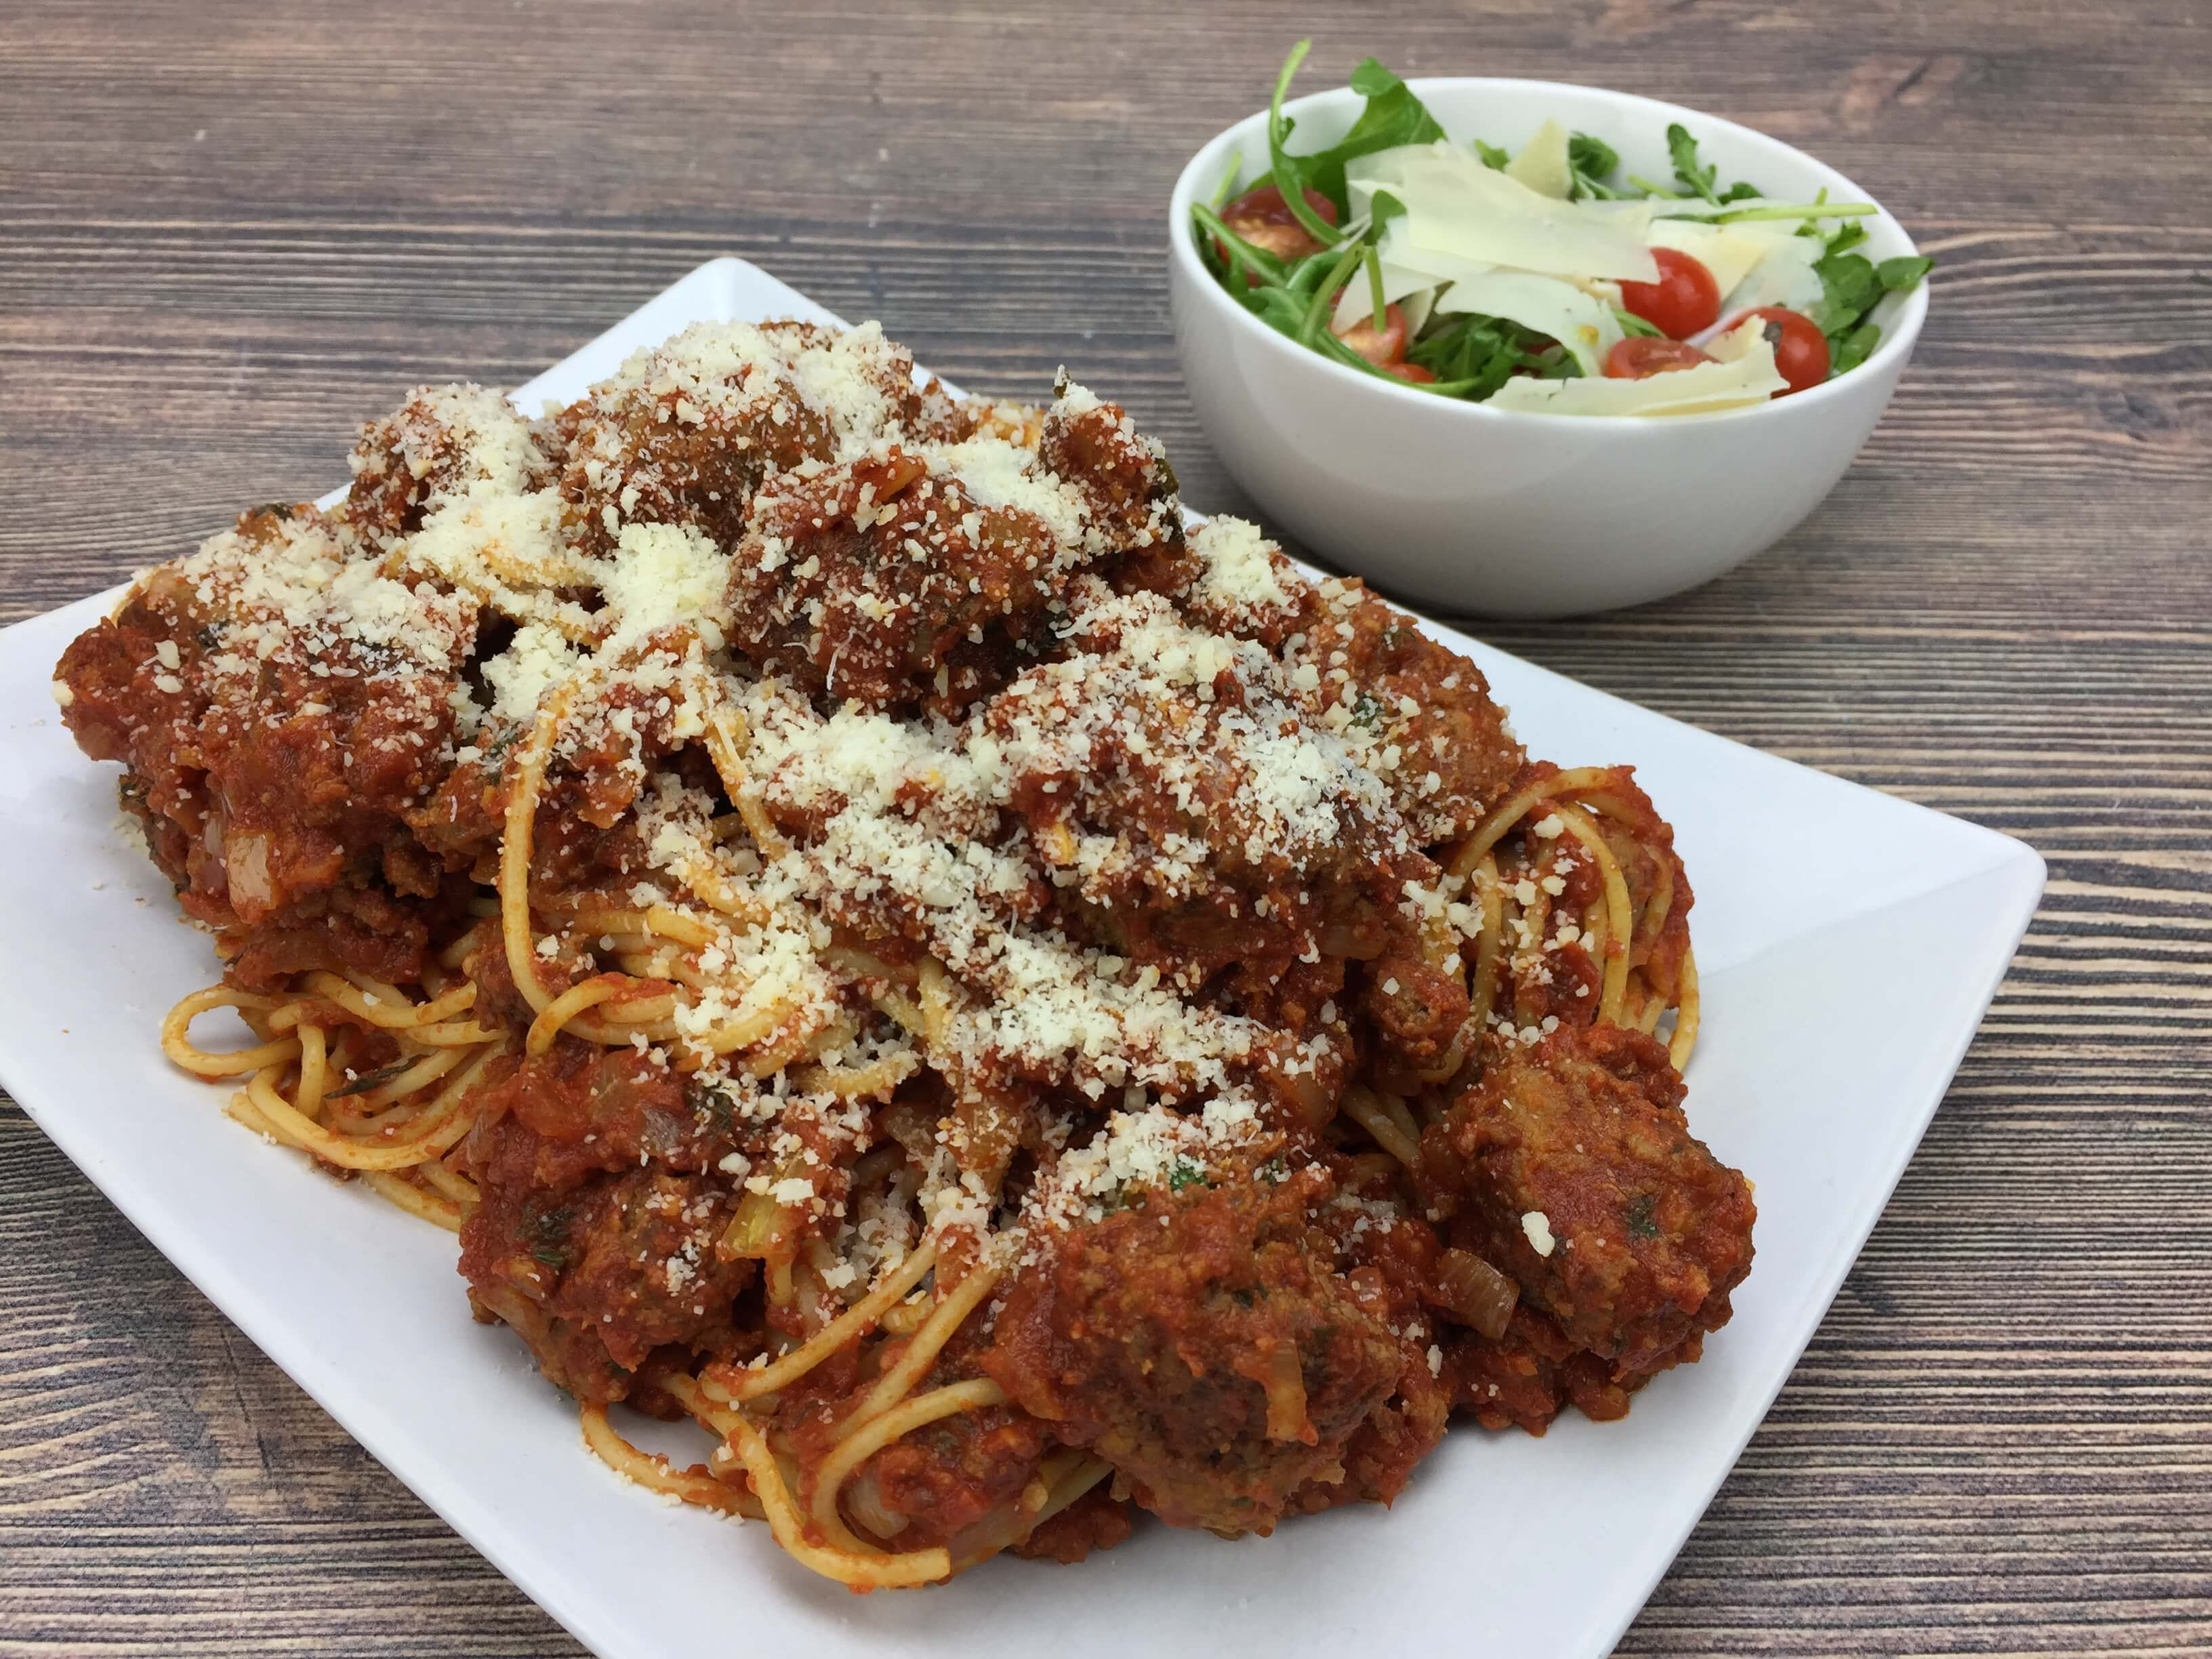 Check out Chef'd, a new family-friendly subscription meal kit.  Our October 2016 review features a great spaghetti and meatballs recipe from NYT Cooking!     Chef'd Subscription Box Review + Coupon - October 2016 →  https://hellosubscription.com/2016/10/chefd-review-coupon/ #ChefD  #subscriptionbox